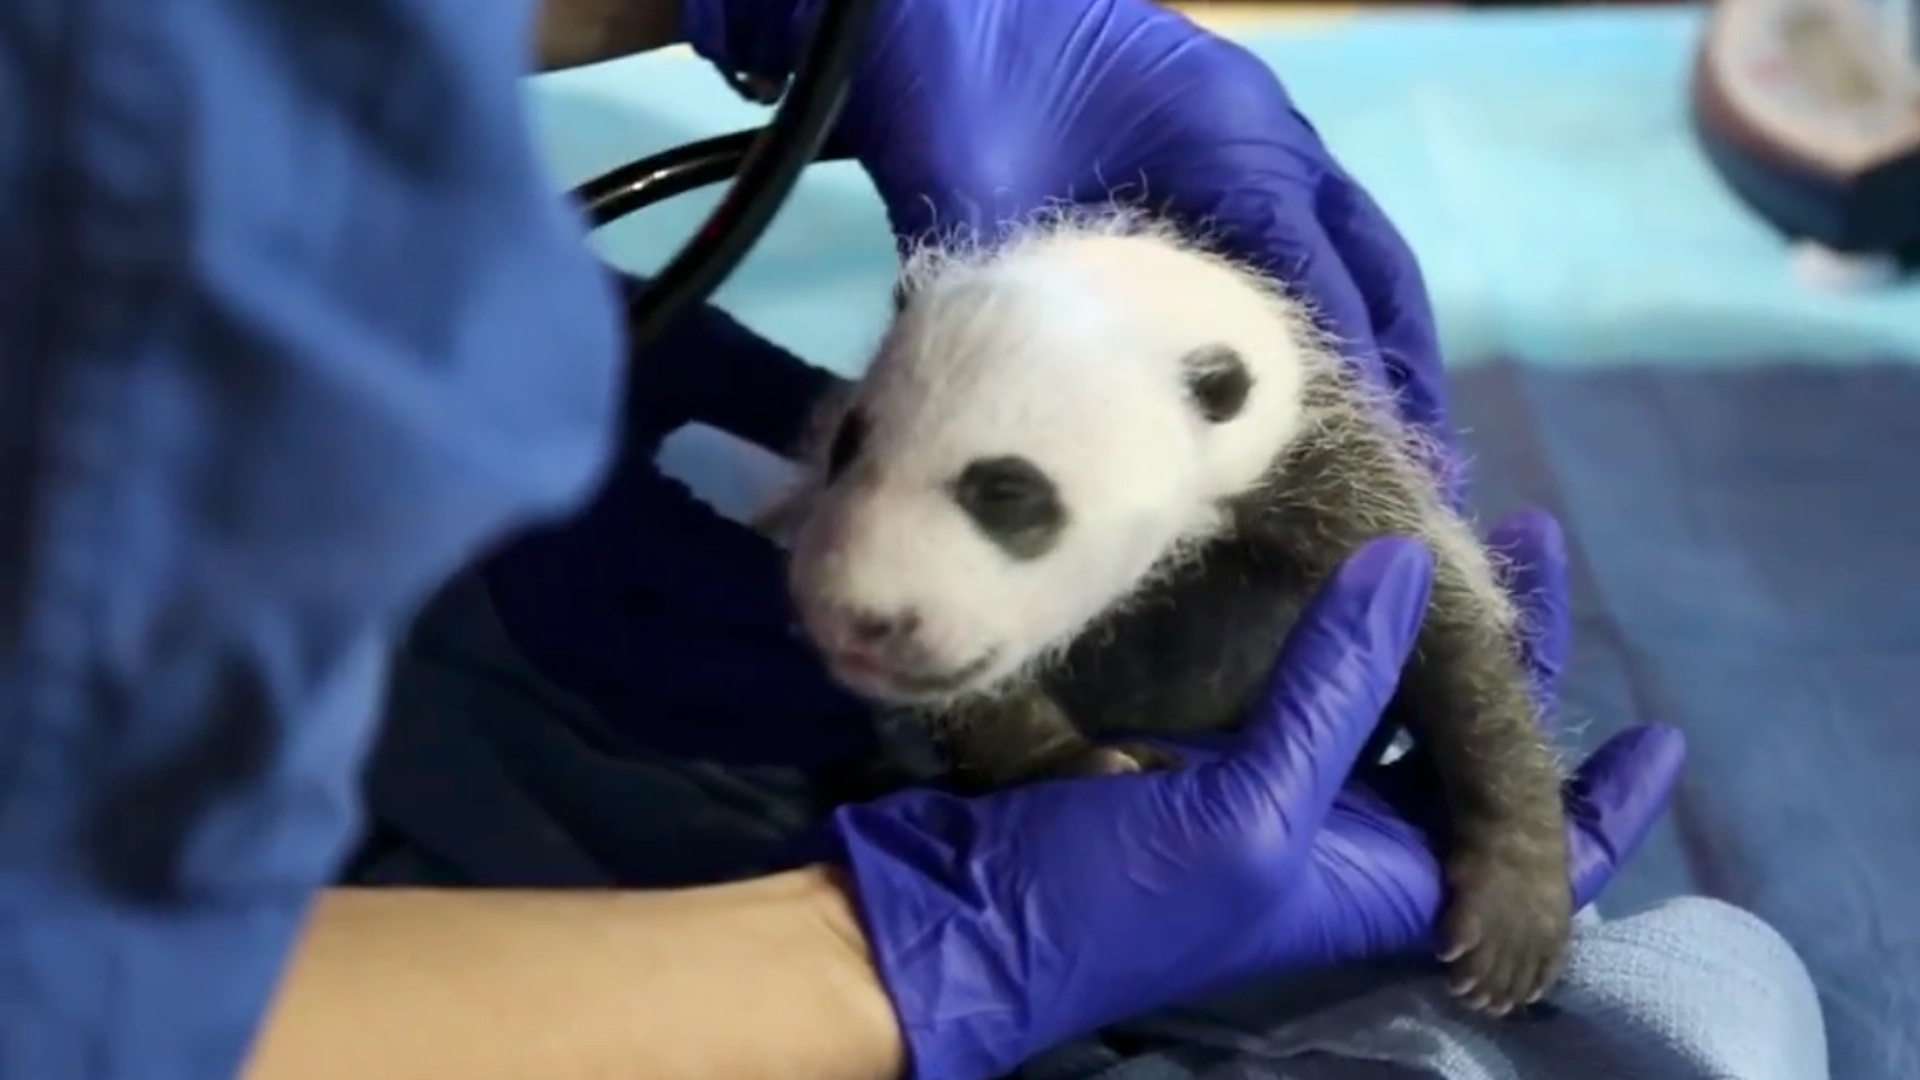 Growing Process from a Baby Panda to a Giant Panda